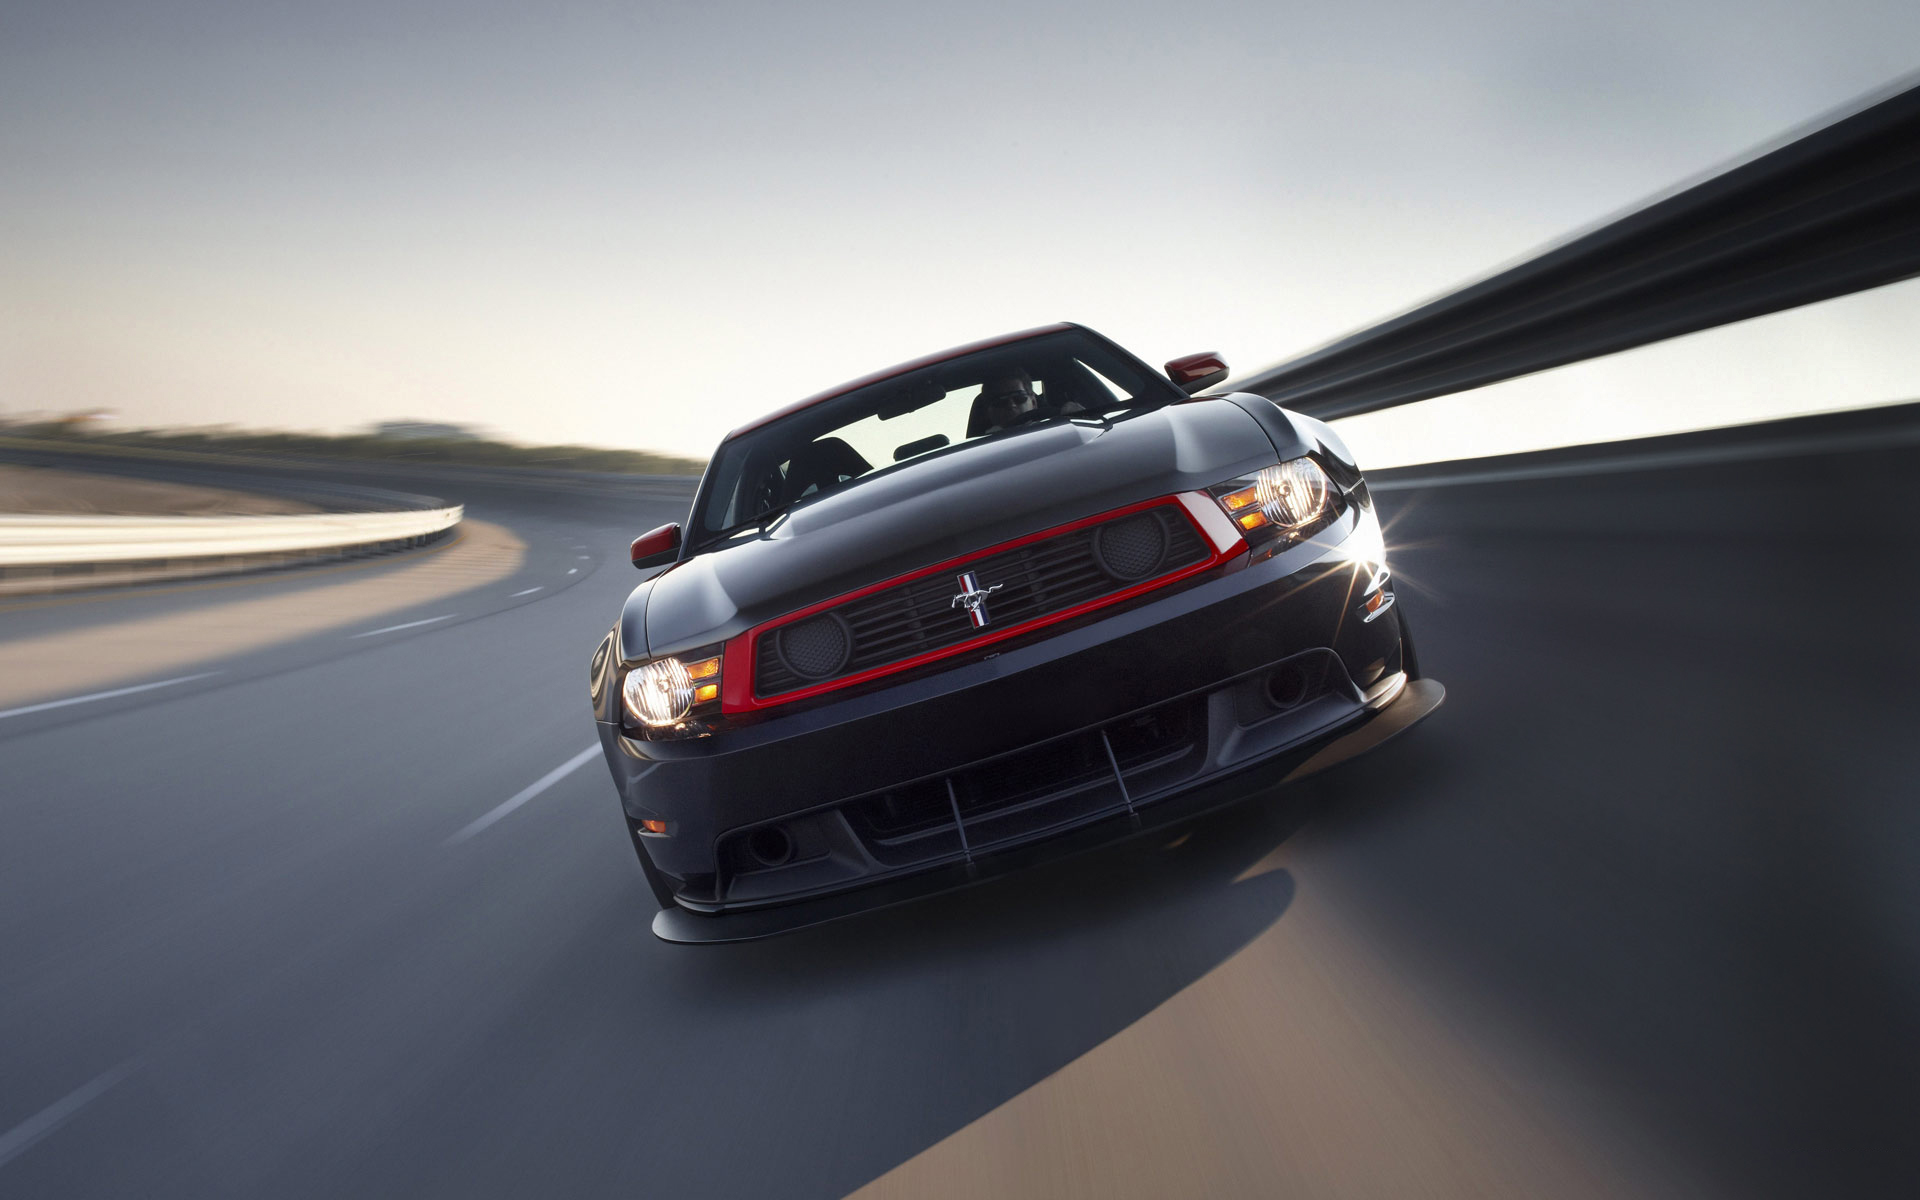 Vehicles - Mustang  - New - Amazing - Cool - Vehicle - Car Wallpaper